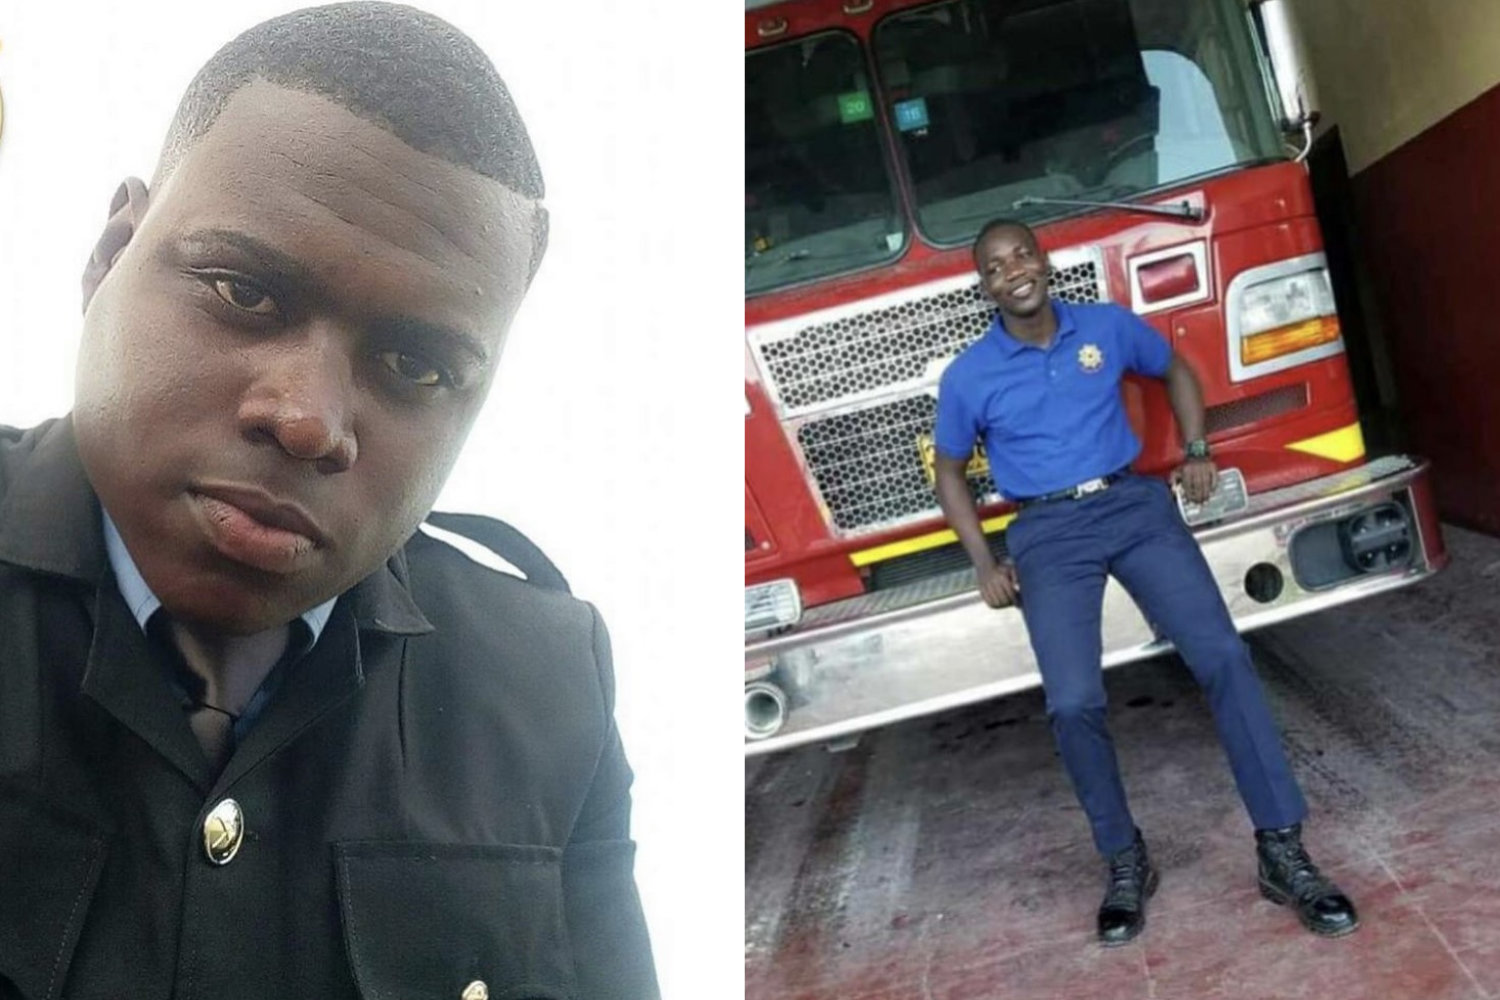 Local Government Minister Expresses Great Sadness at the Deaths of Two Firefighters